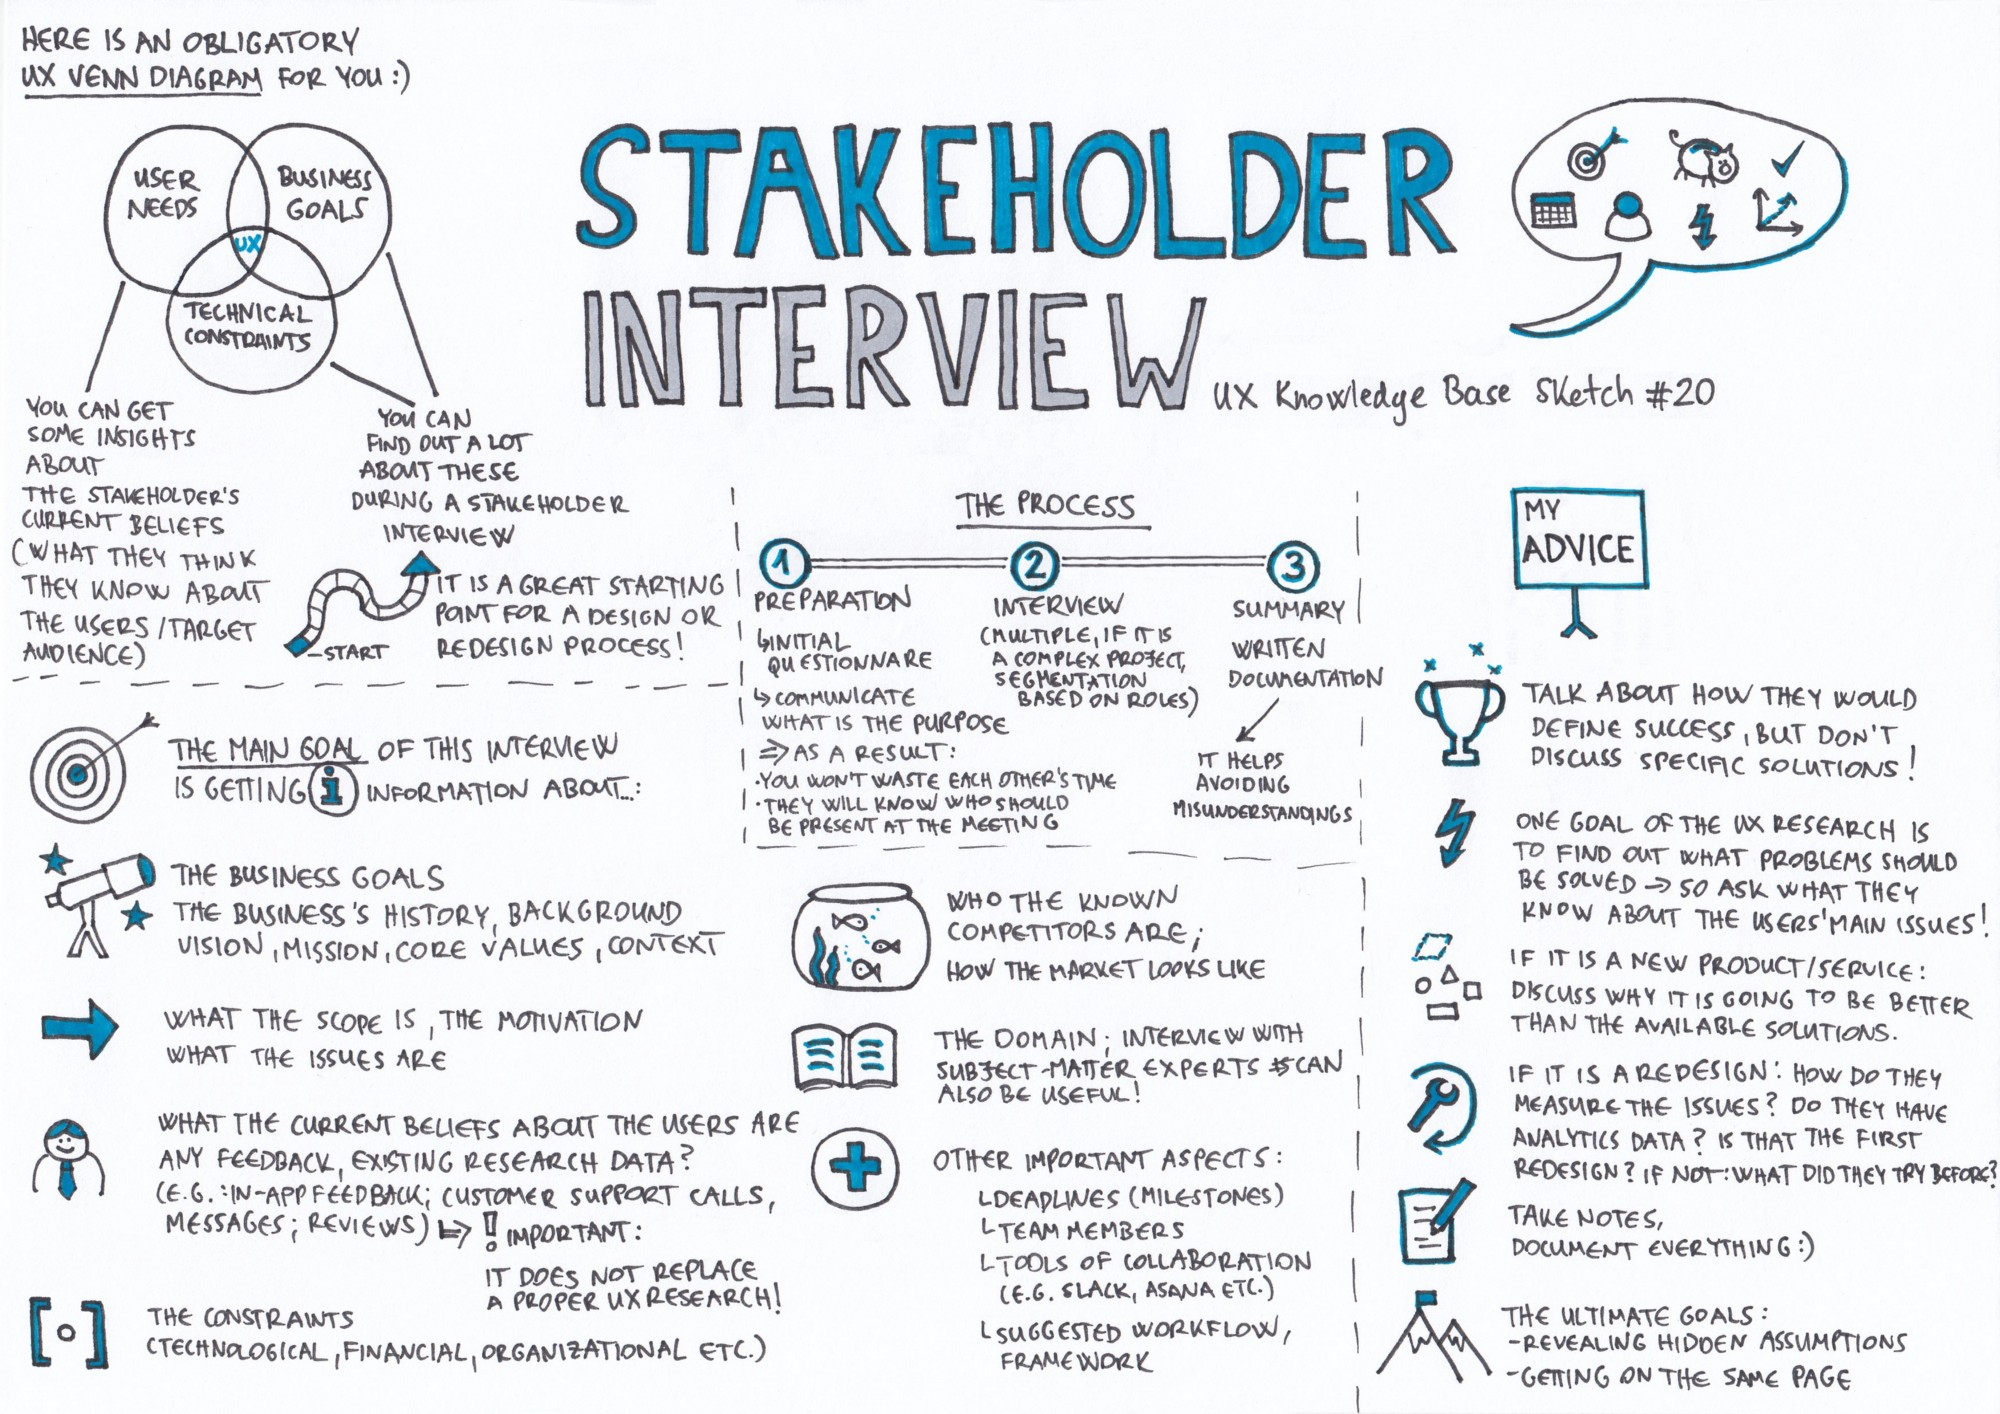 Stakeholder Interview UX Knowledge Base Sketch